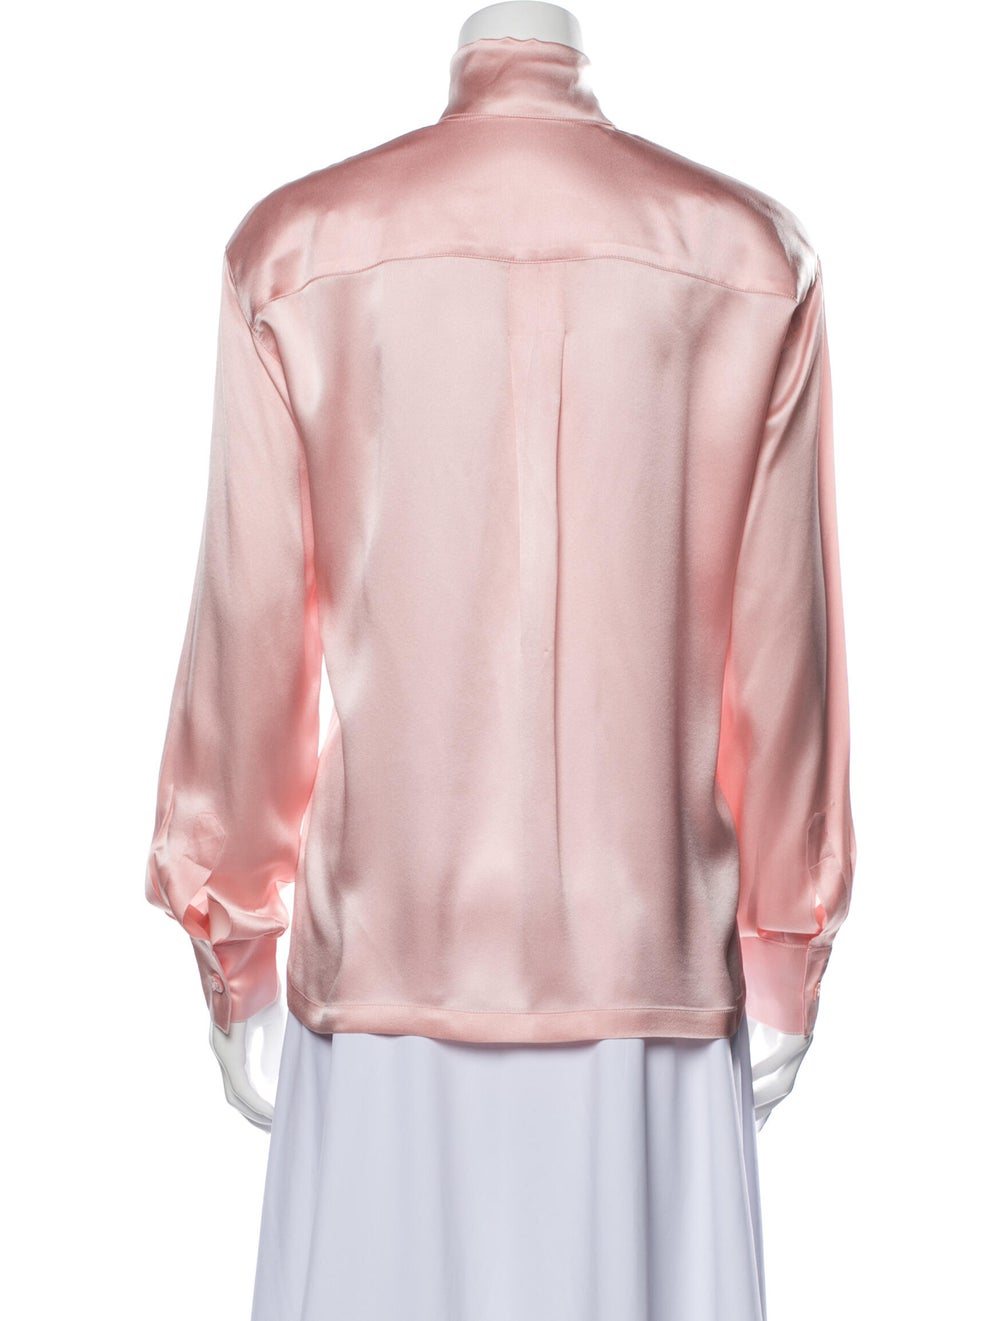 Escada Silk Mock Neck Blouse Pink - image 3